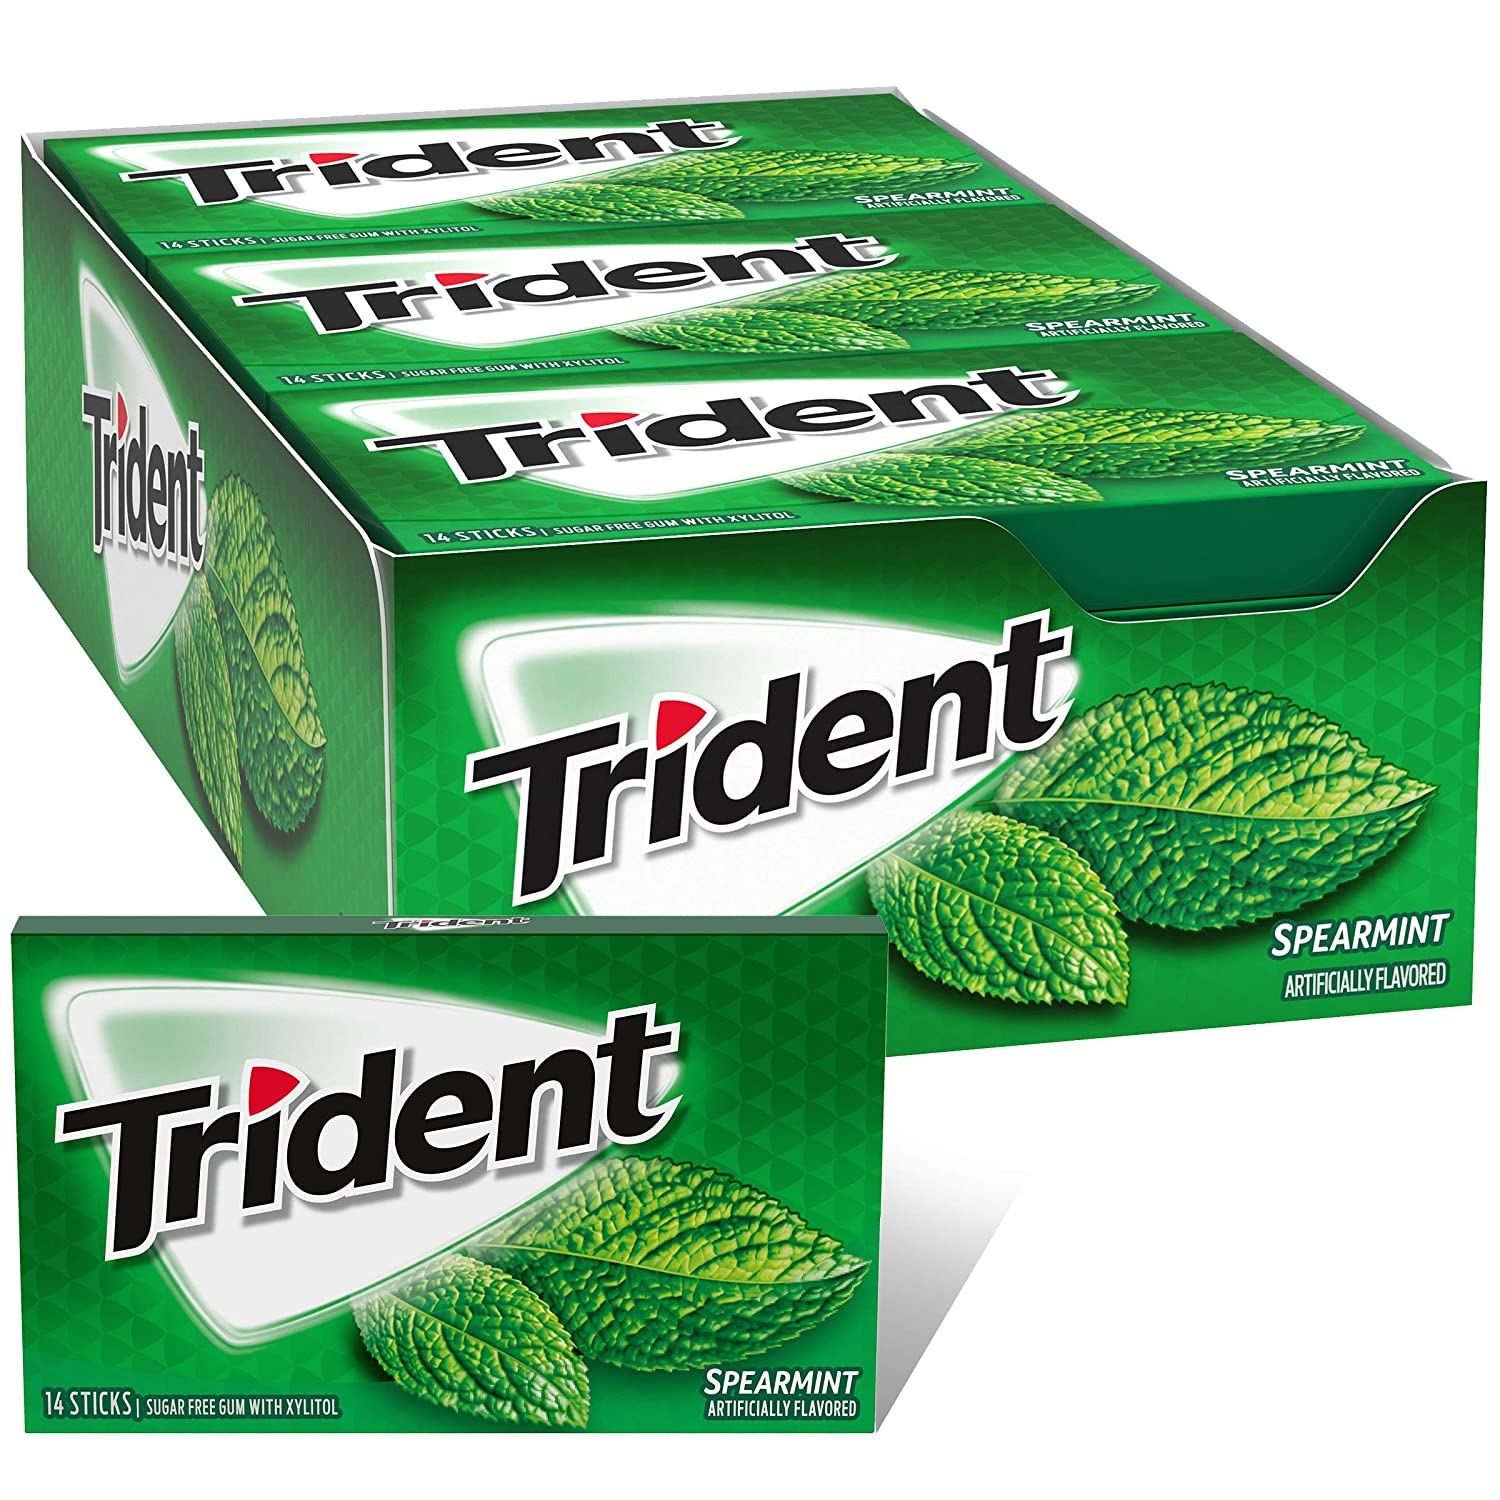 Trident Spearmint Sugar Free Gum, 12 Packs of 14 Pieces (168 Total Pieces) 91EMUccF7lL